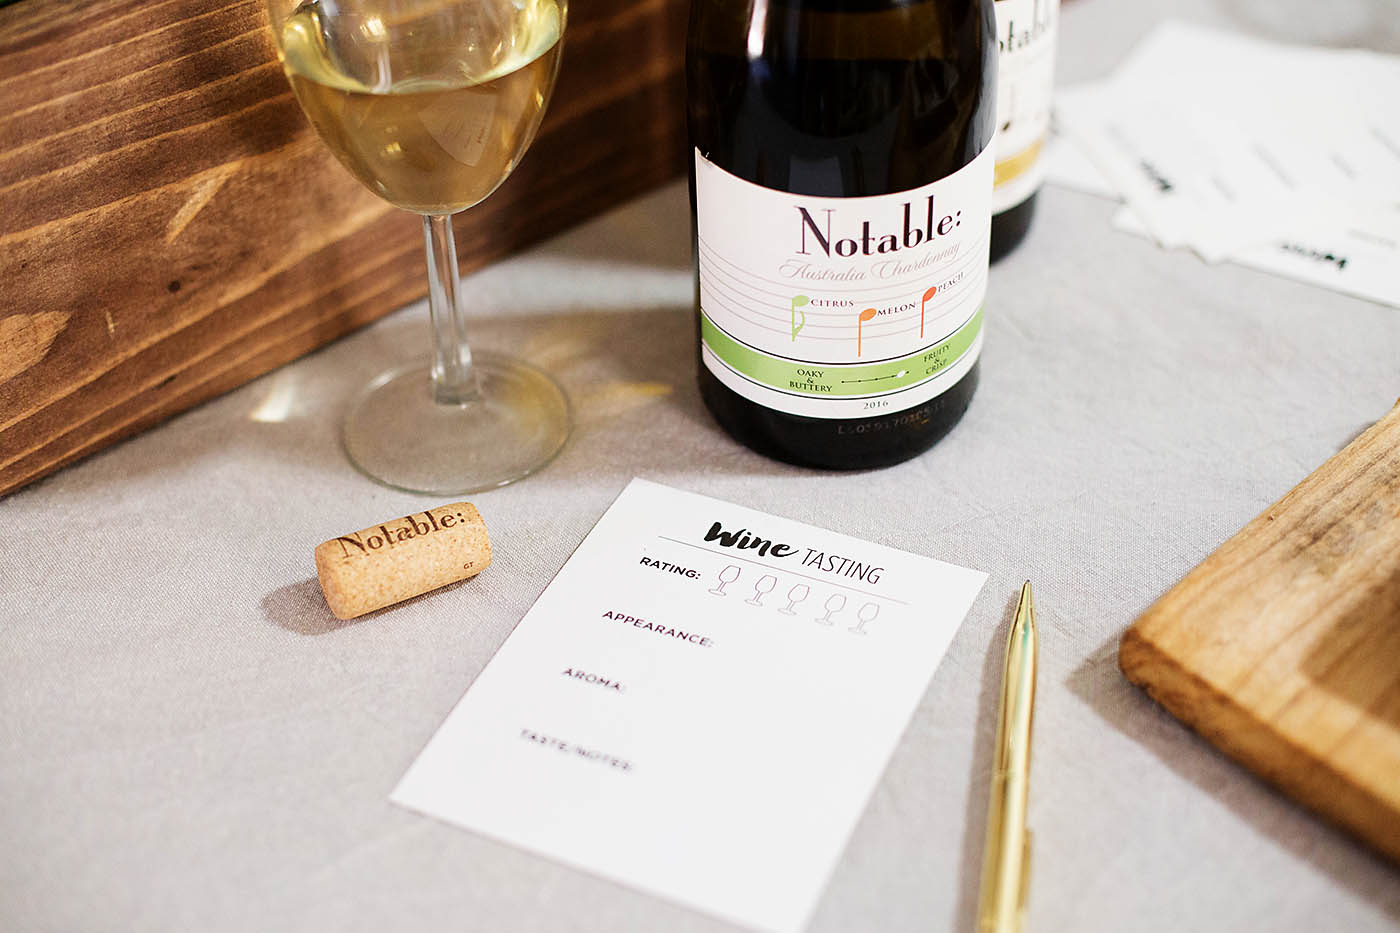 Chardonnay Day Party, Recipes & Wine Tasting Printable - All for the ...